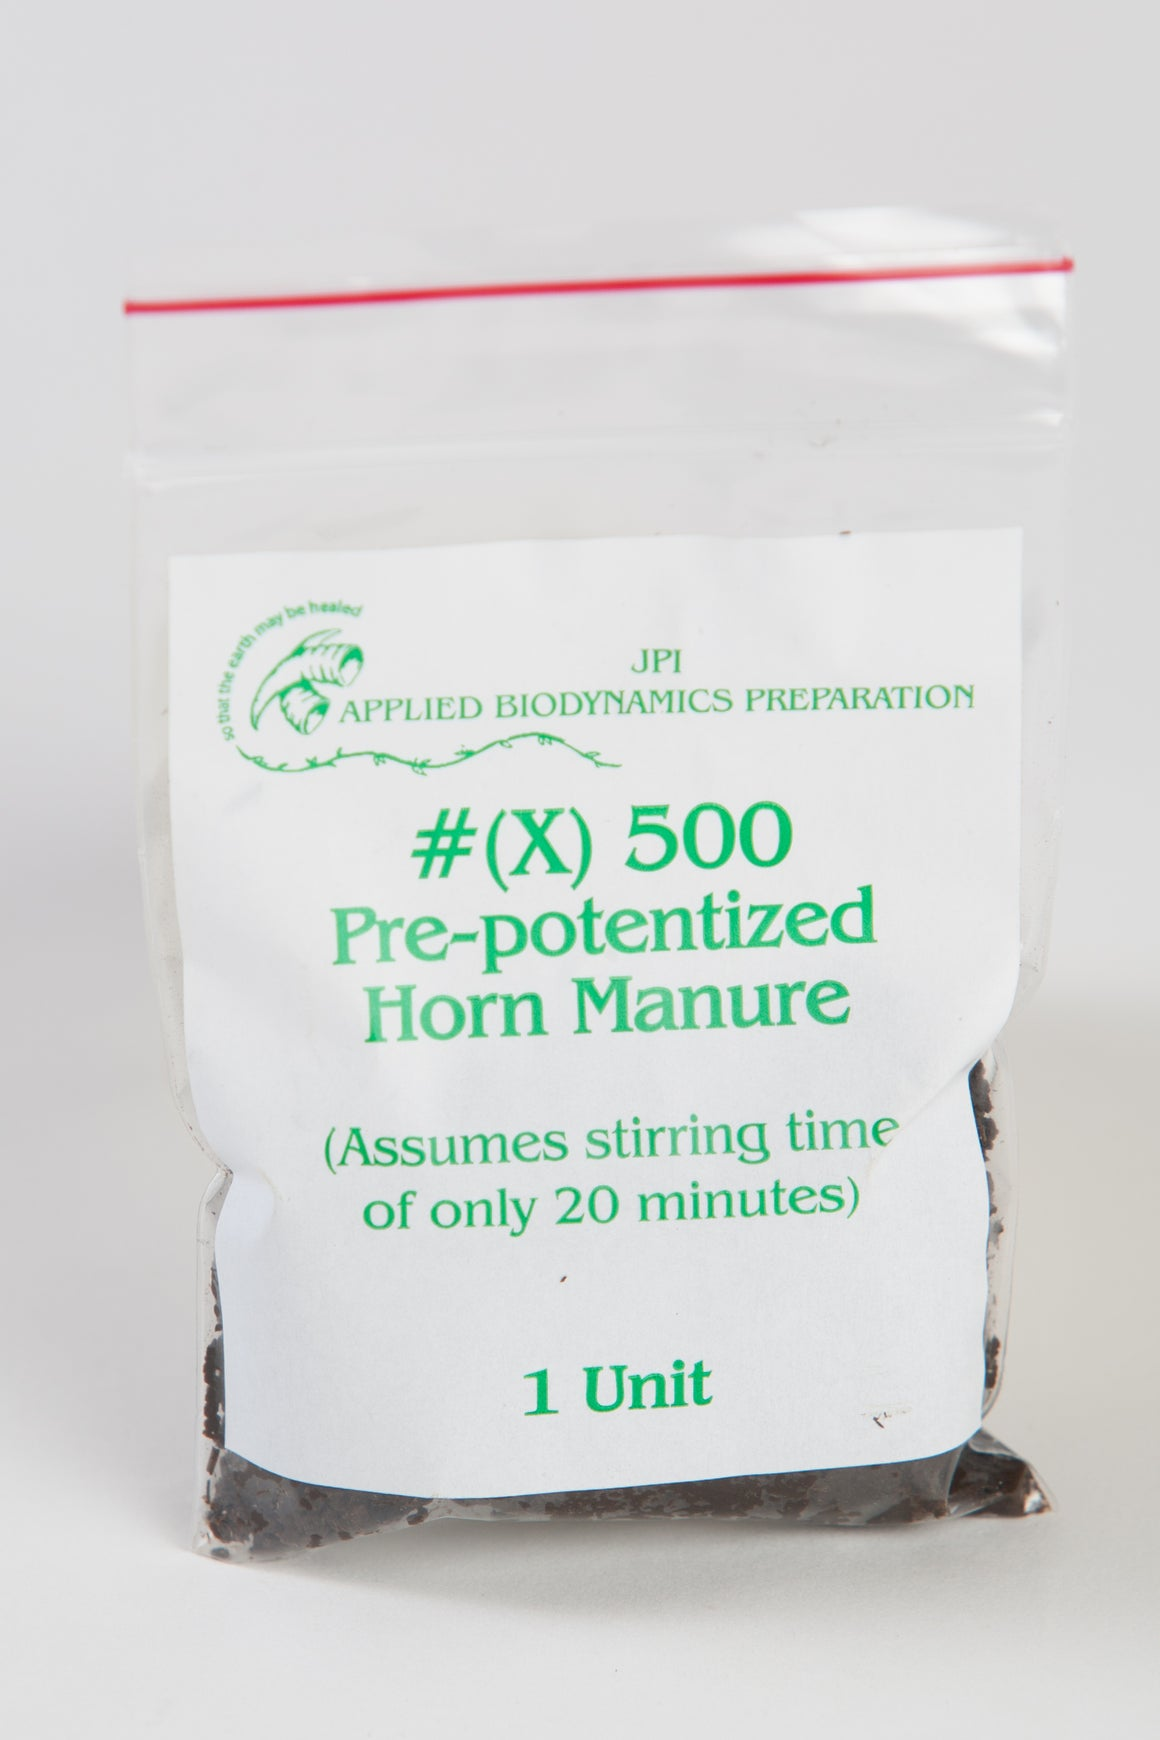 BD #500(X) Pre-Potentized Horn Manure (BD Spray Preparation)